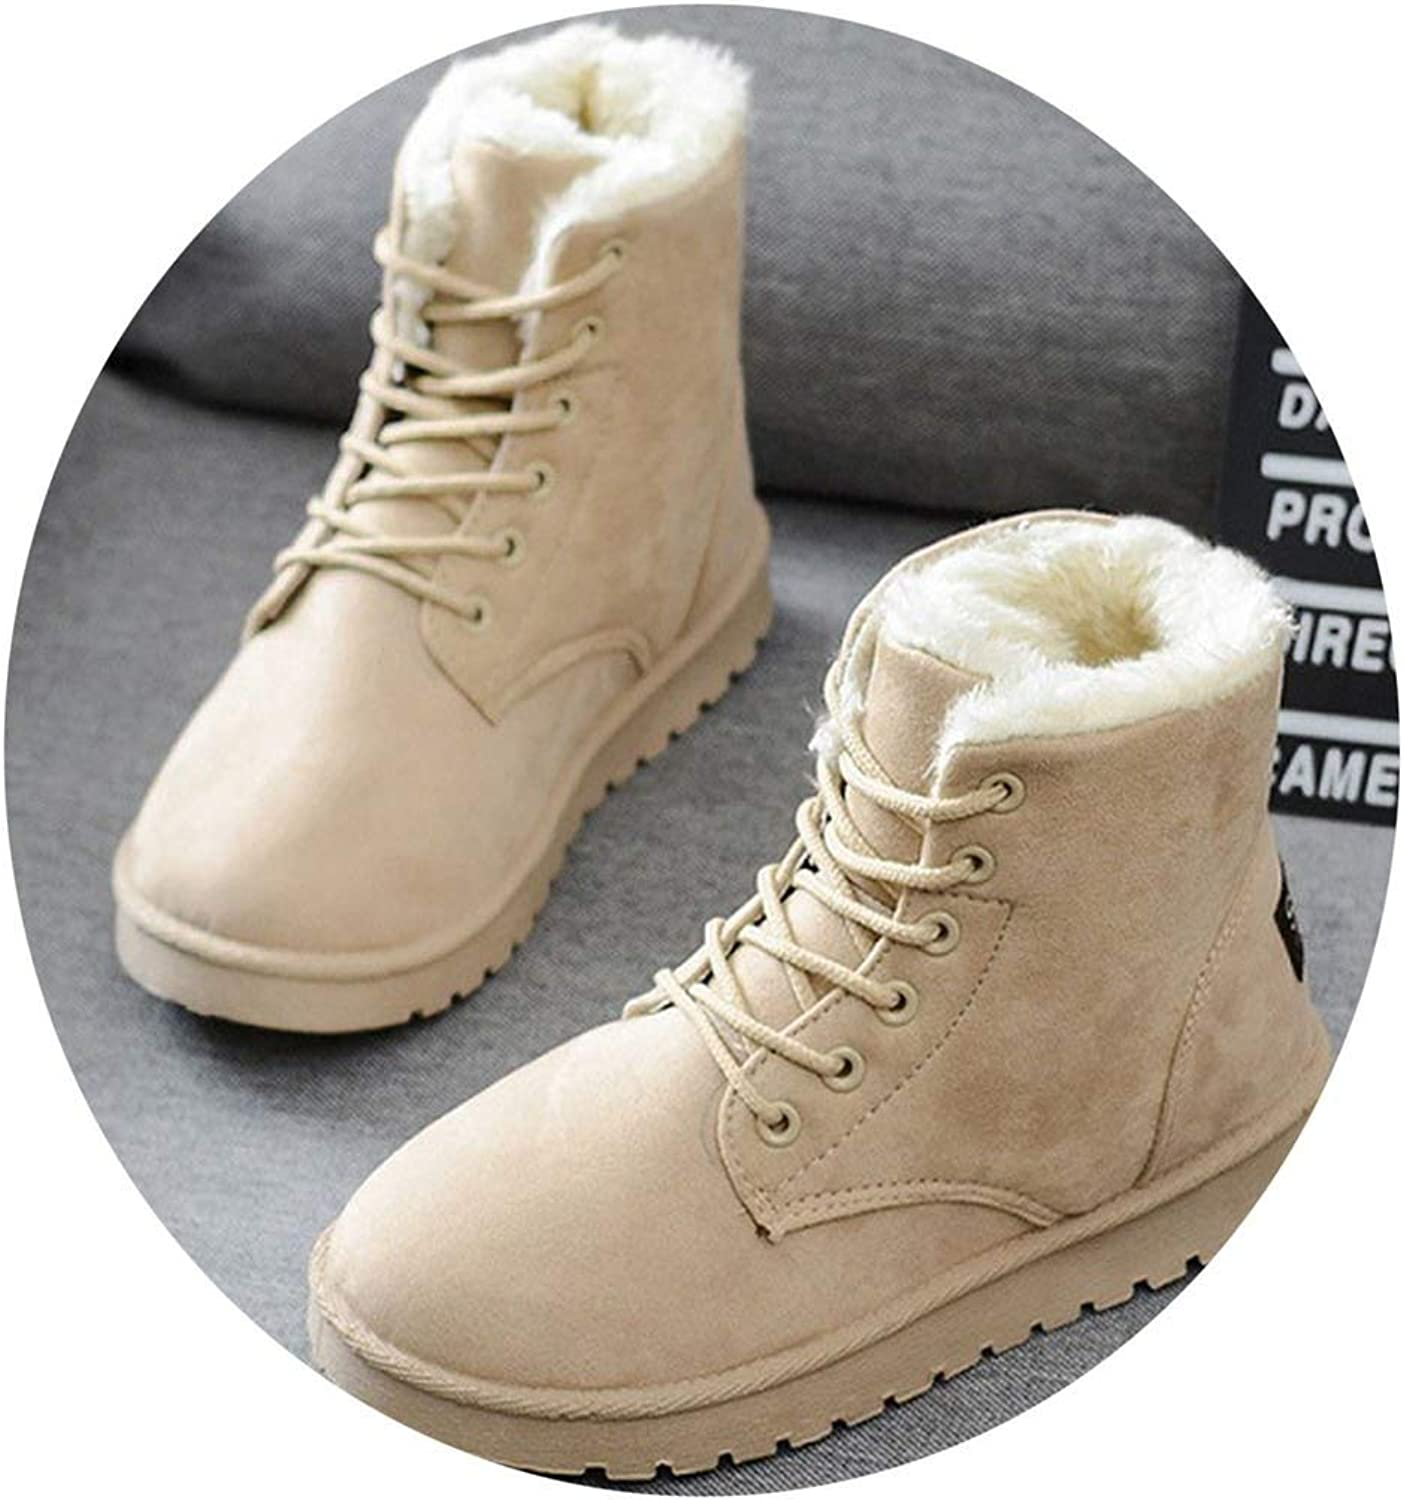 Women Boots Warm Winter Boots Female Fashion Women shoes Faux Suede Ankle Boots